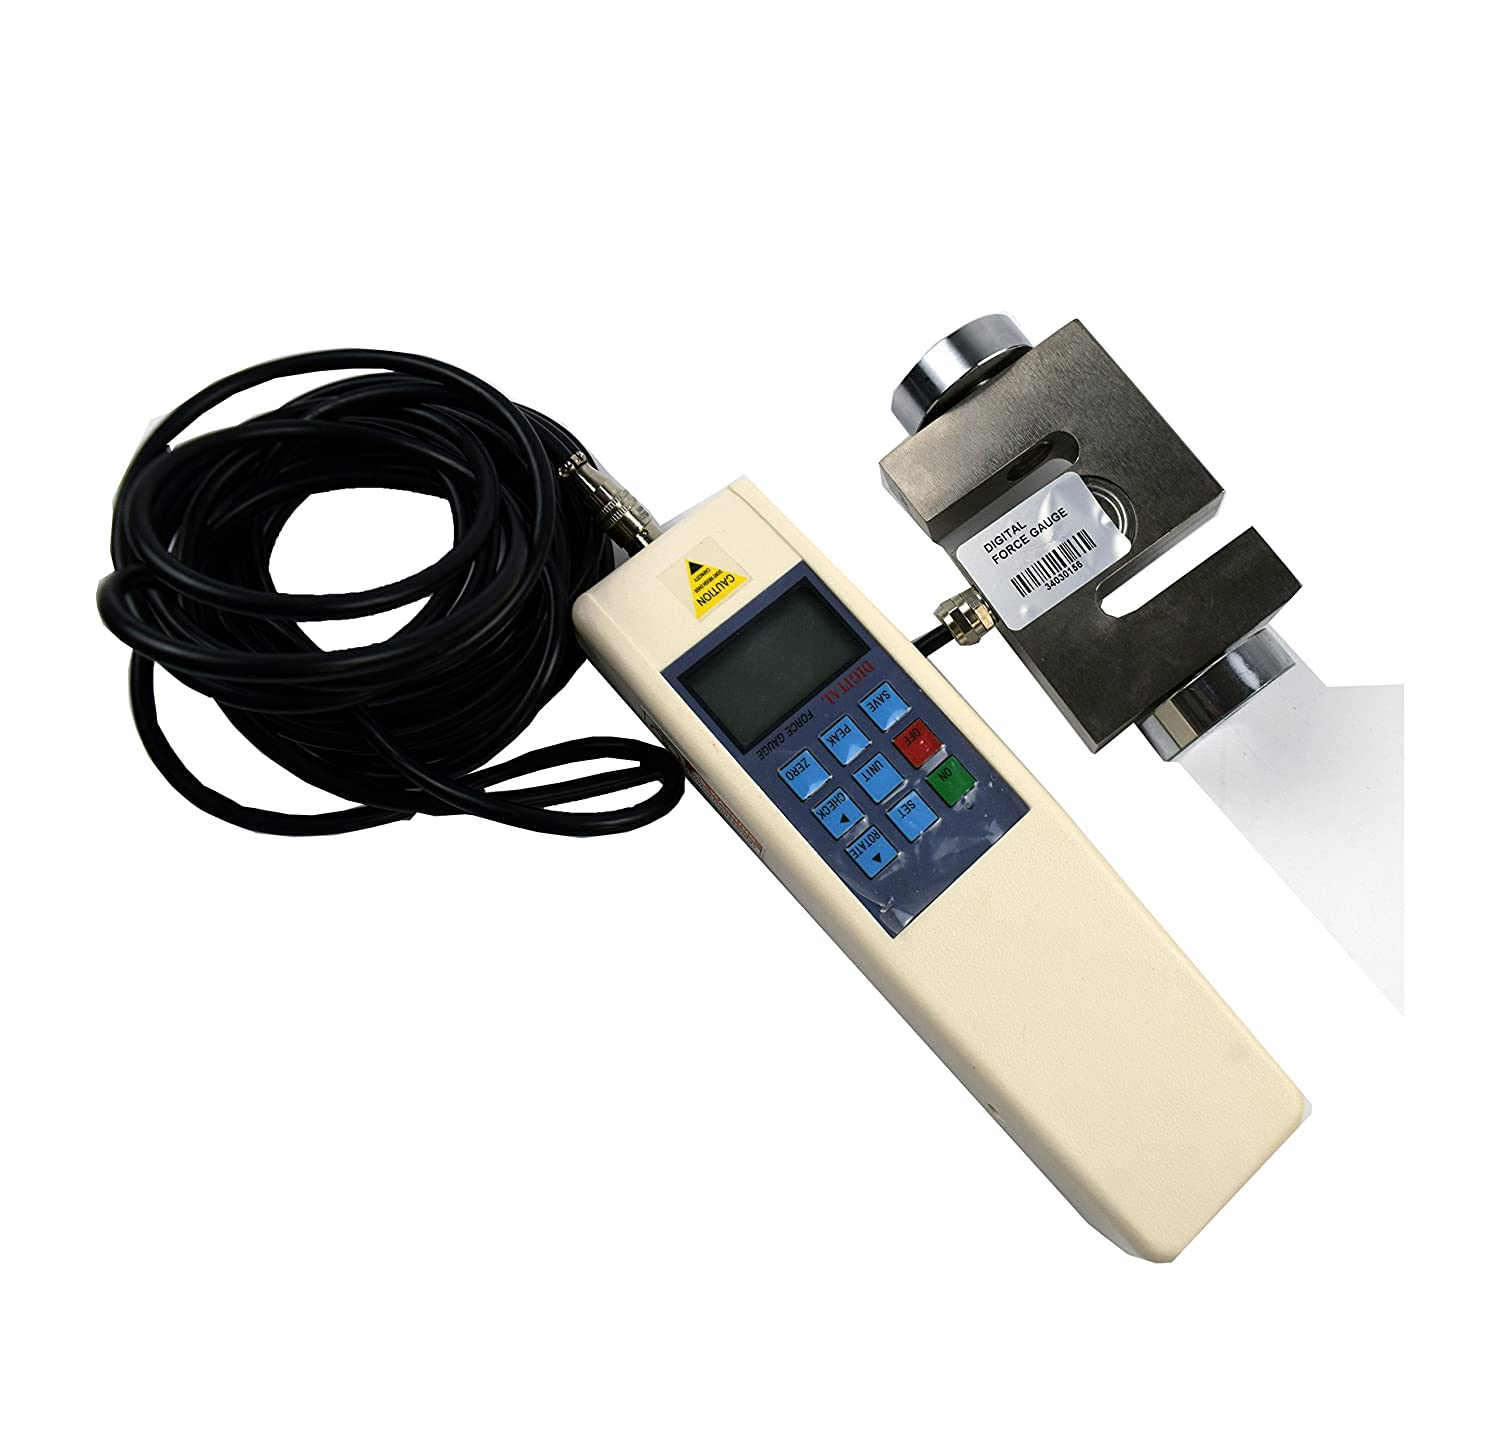 CNYST Free shipping on posting reviews Digital Force Gauge Handheld Sale special price Pull Push Meter Tester Dynamo